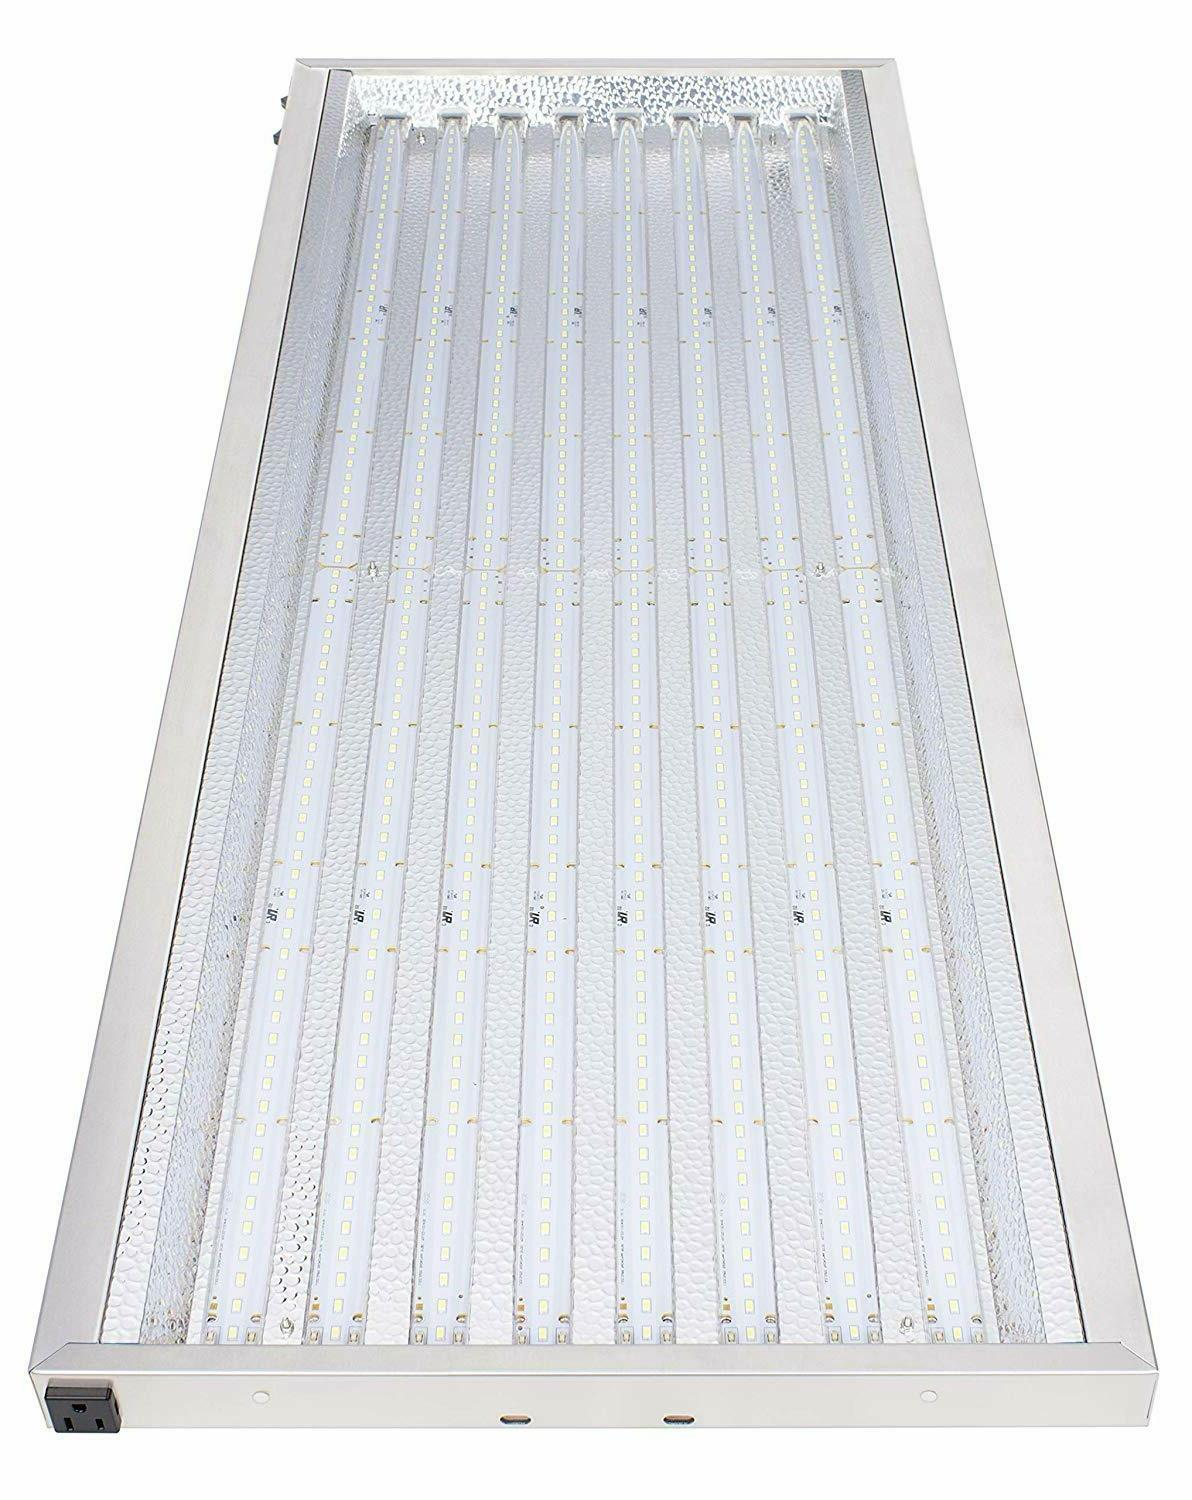 DUROLUX LED GROW LIGHT | 4 1.5 FOOT WHITE 40000